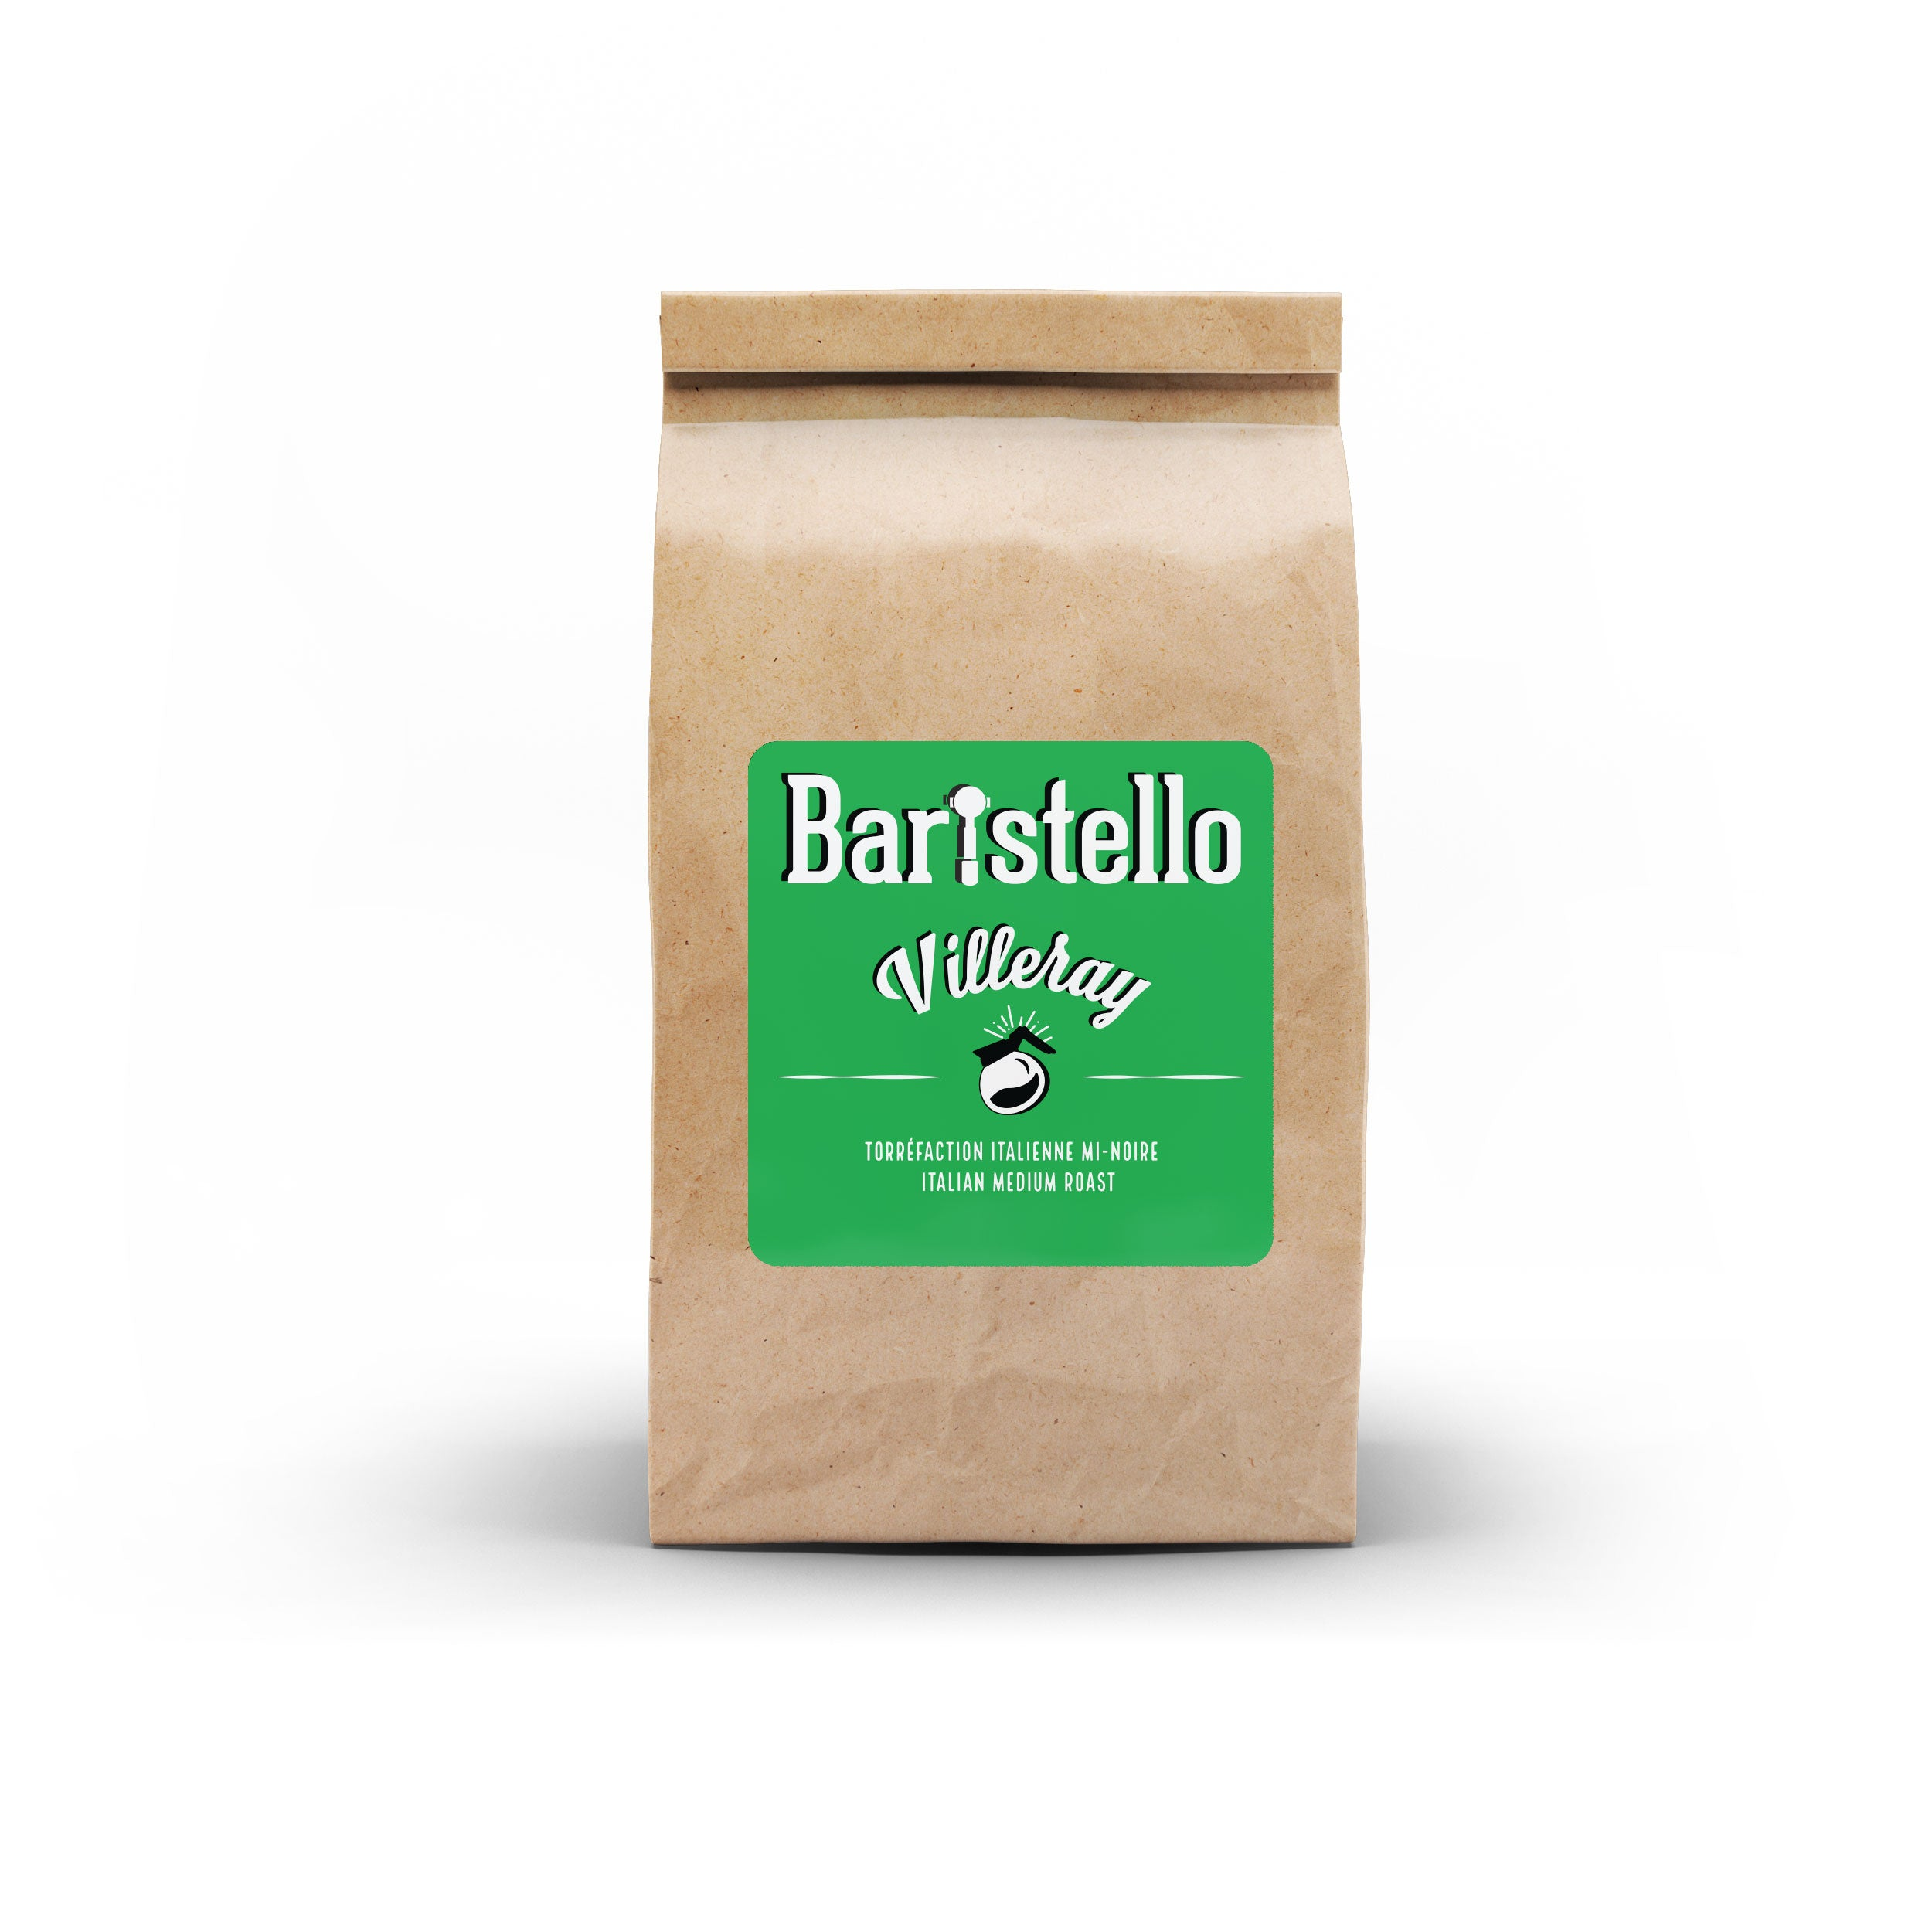 Baristello Villeray Coffee Blend